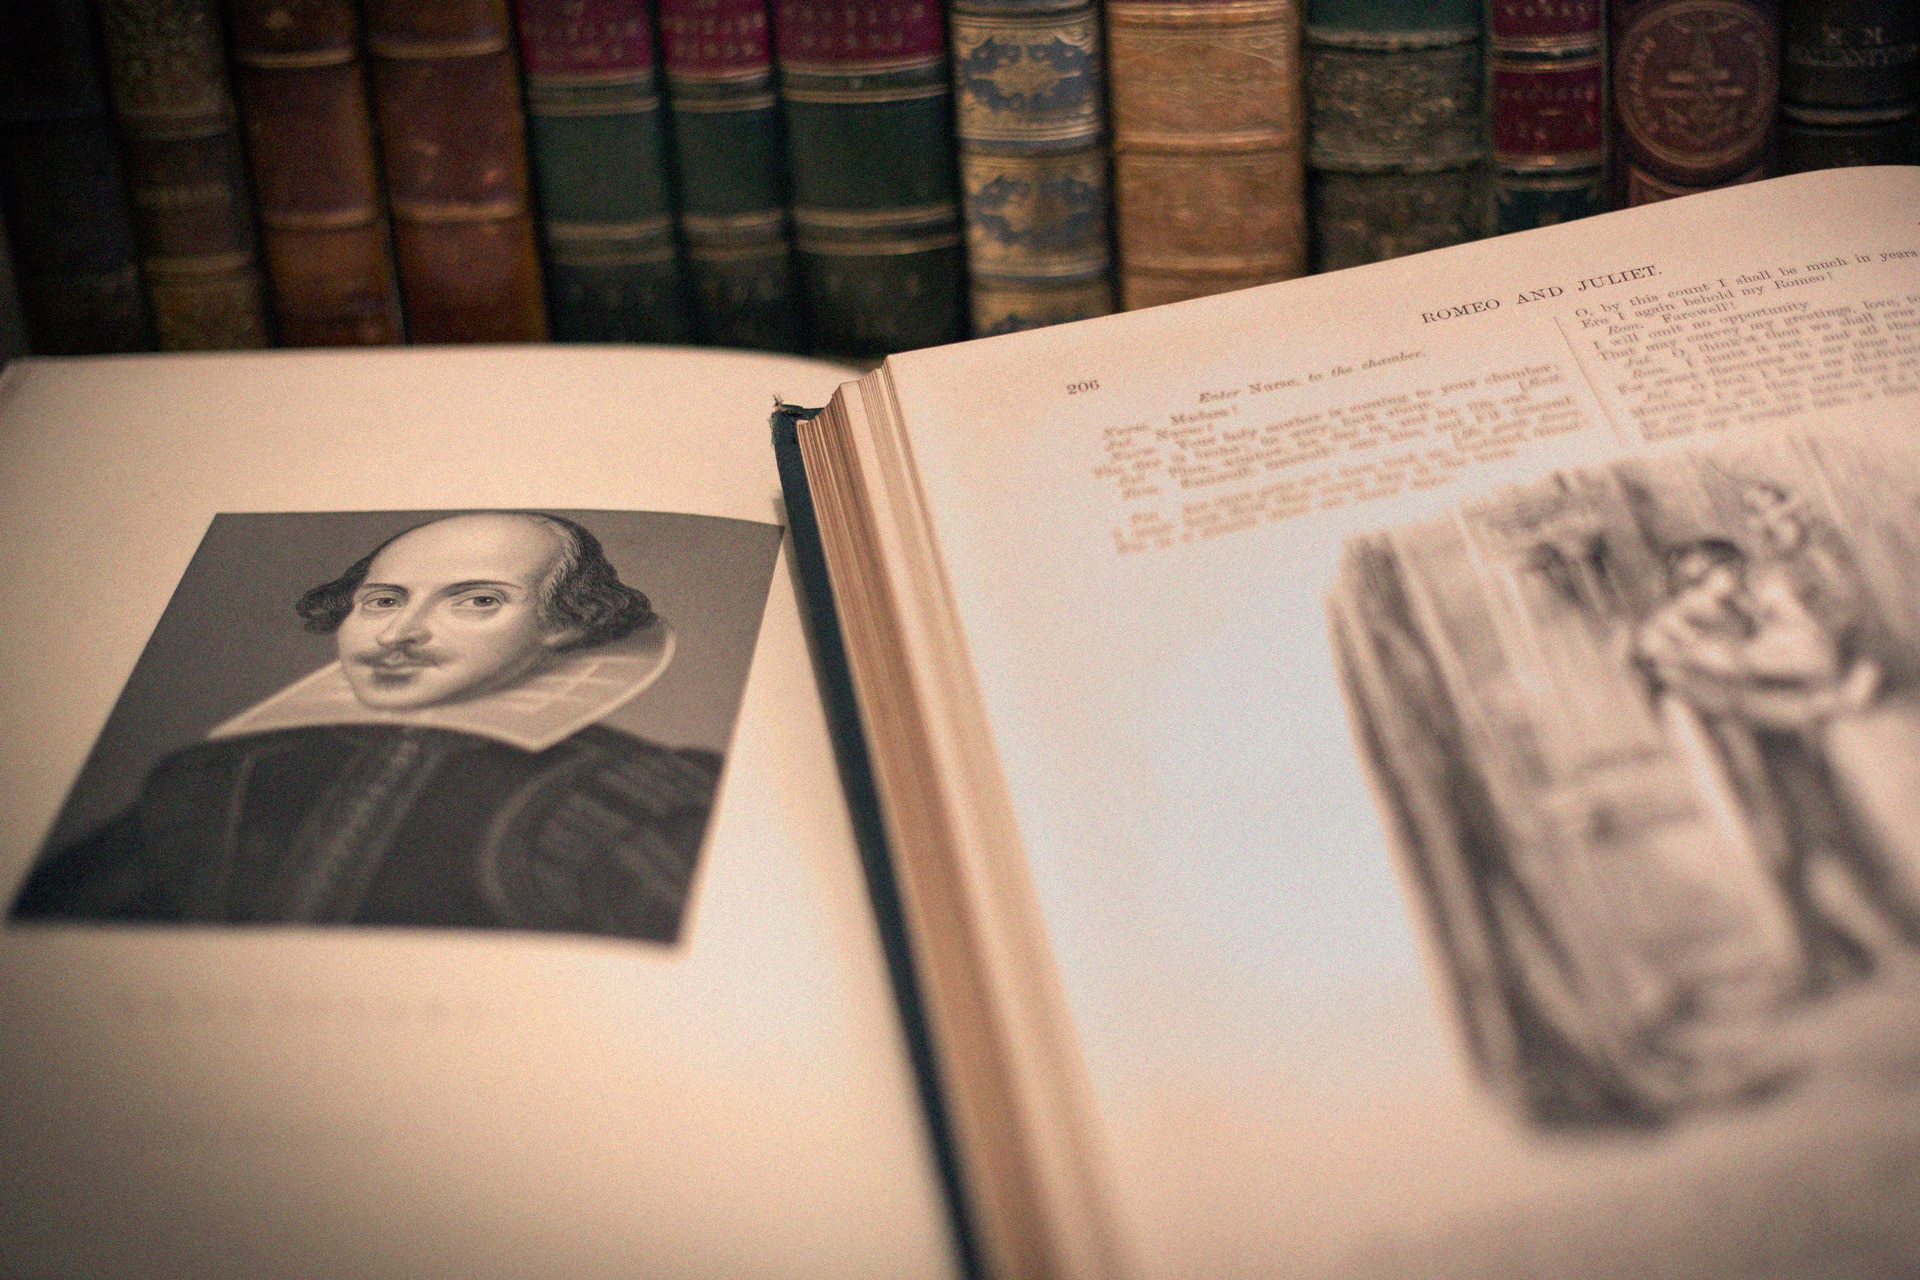 Shakespeare's Plan for Personal Growth